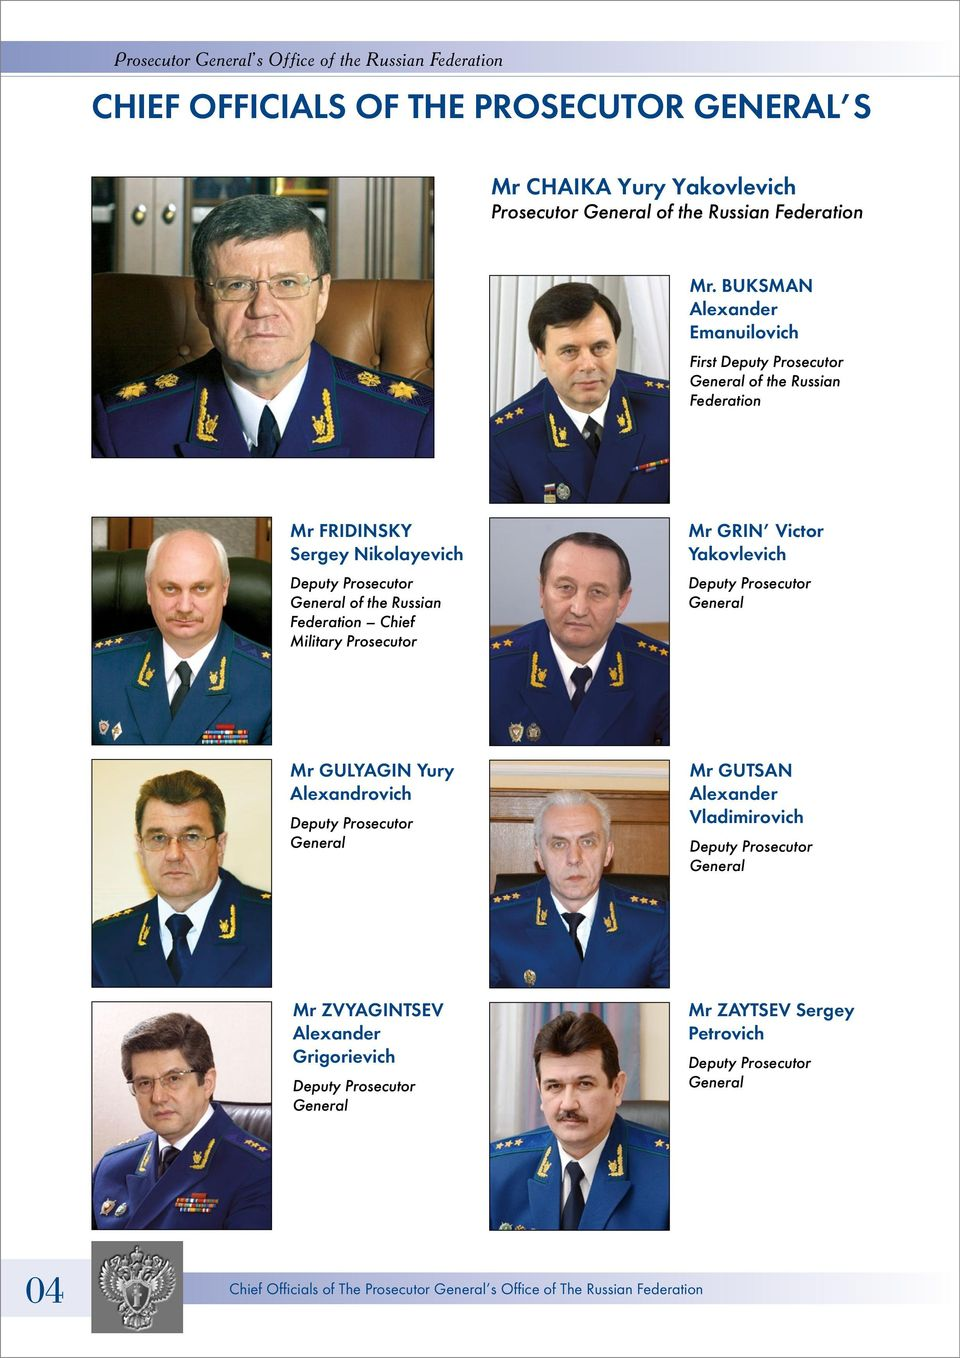 Federation Chief Military Prosecutor Mr GRIN Victor Yakovlevich Deputy Prosecutor General Mr GULYAGIN Yury Alexandrovich Deputy Prosecutor General Mr GUTSAN Alexander